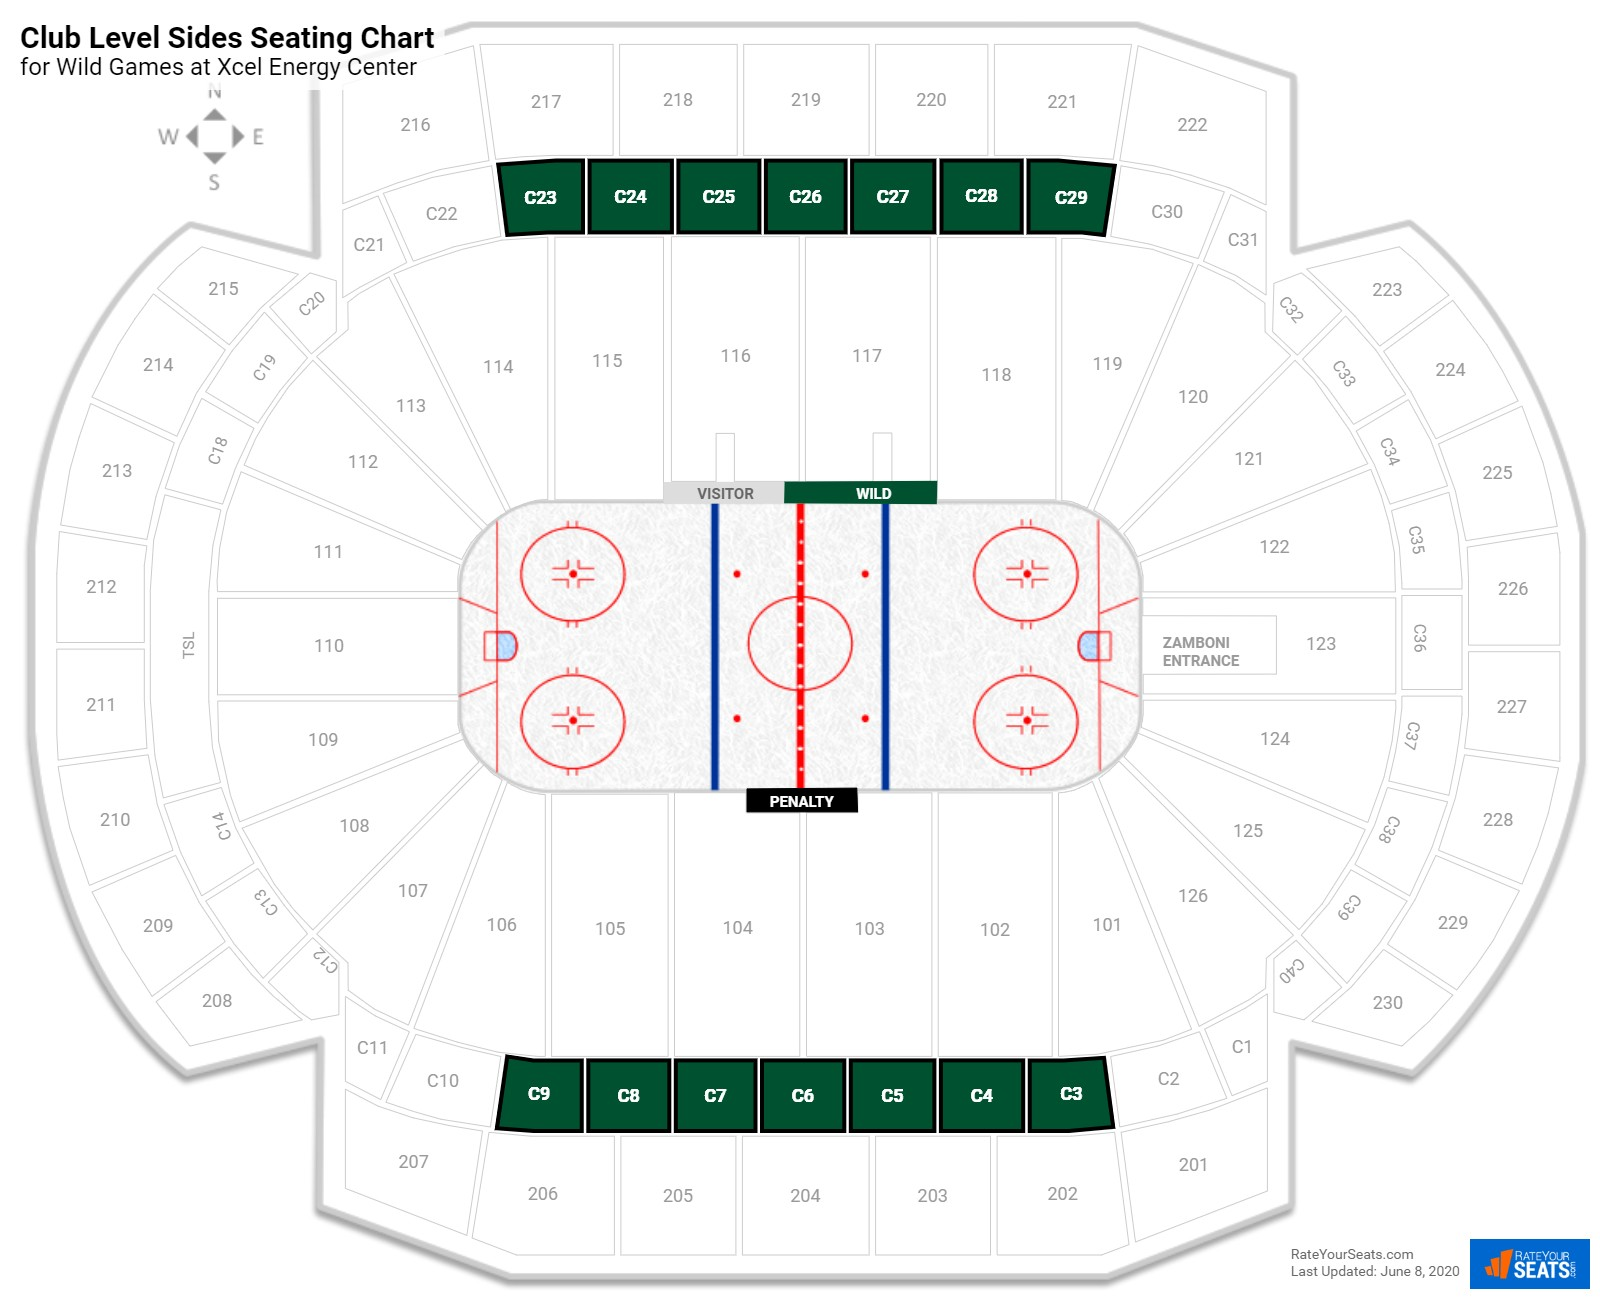 Xcel Energy Center Club Level Side seating chart